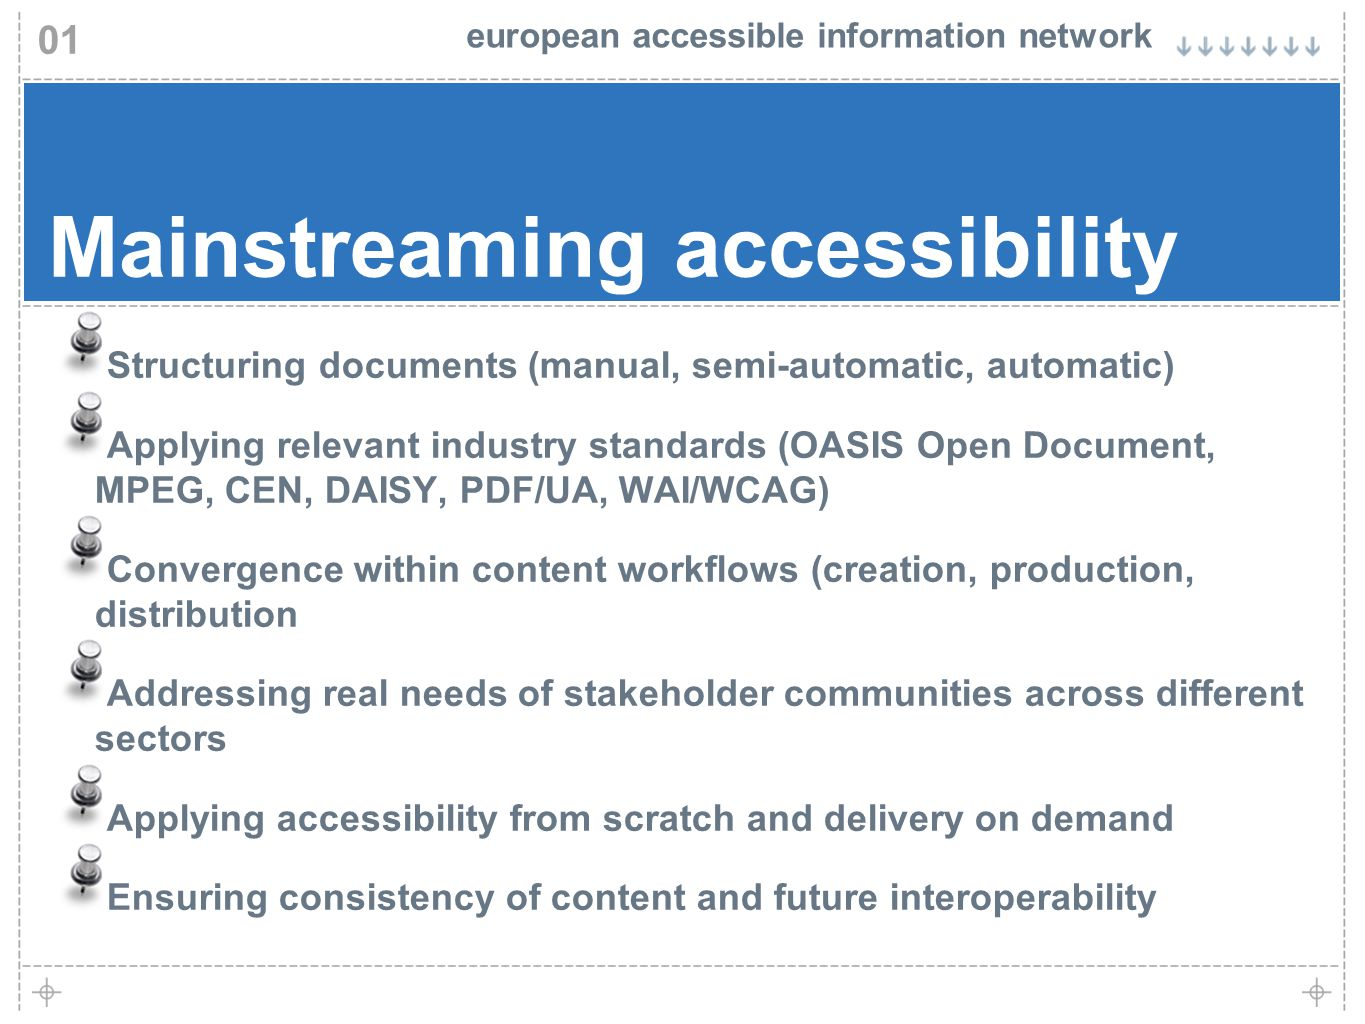 european accessible information network 01 Mainstreaming accessibility Structuring documents (manual, semi-automatic, automatic) Applying relevant industry standards (OASIS Open Document, MPEG, CEN, DAISY, PDF/UA, WAI/WCAG) Convergence within content workflows (creation, production, distribution Addressing real needs of stakeholder communities across different sectors Applying accessibility from scratch and delivery on demand Ensuring consistency of content and future interoperability